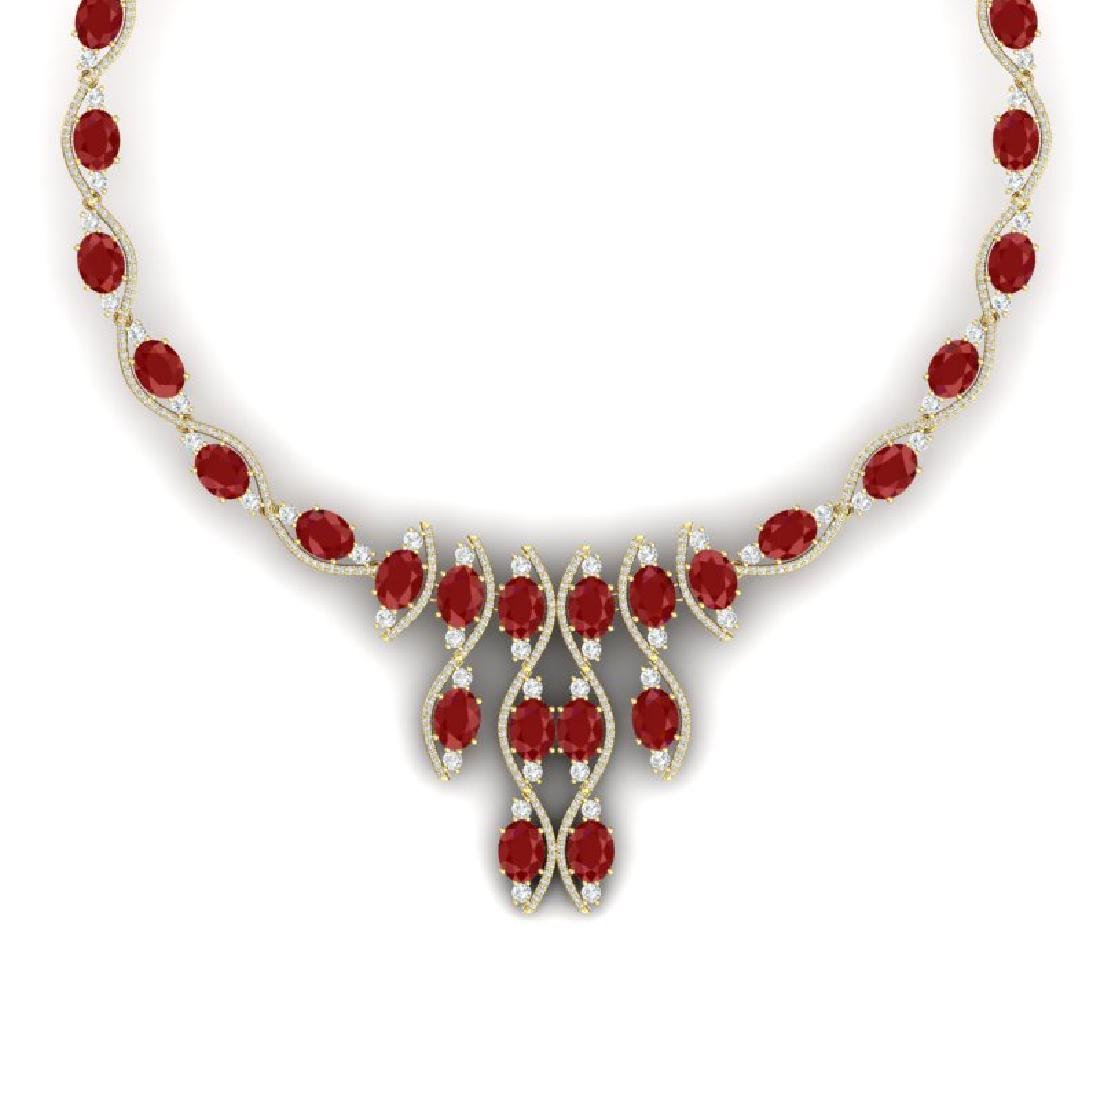 65.93 CTW Royalty Ruby & VS Diamond Necklace 18K Yellow - 2